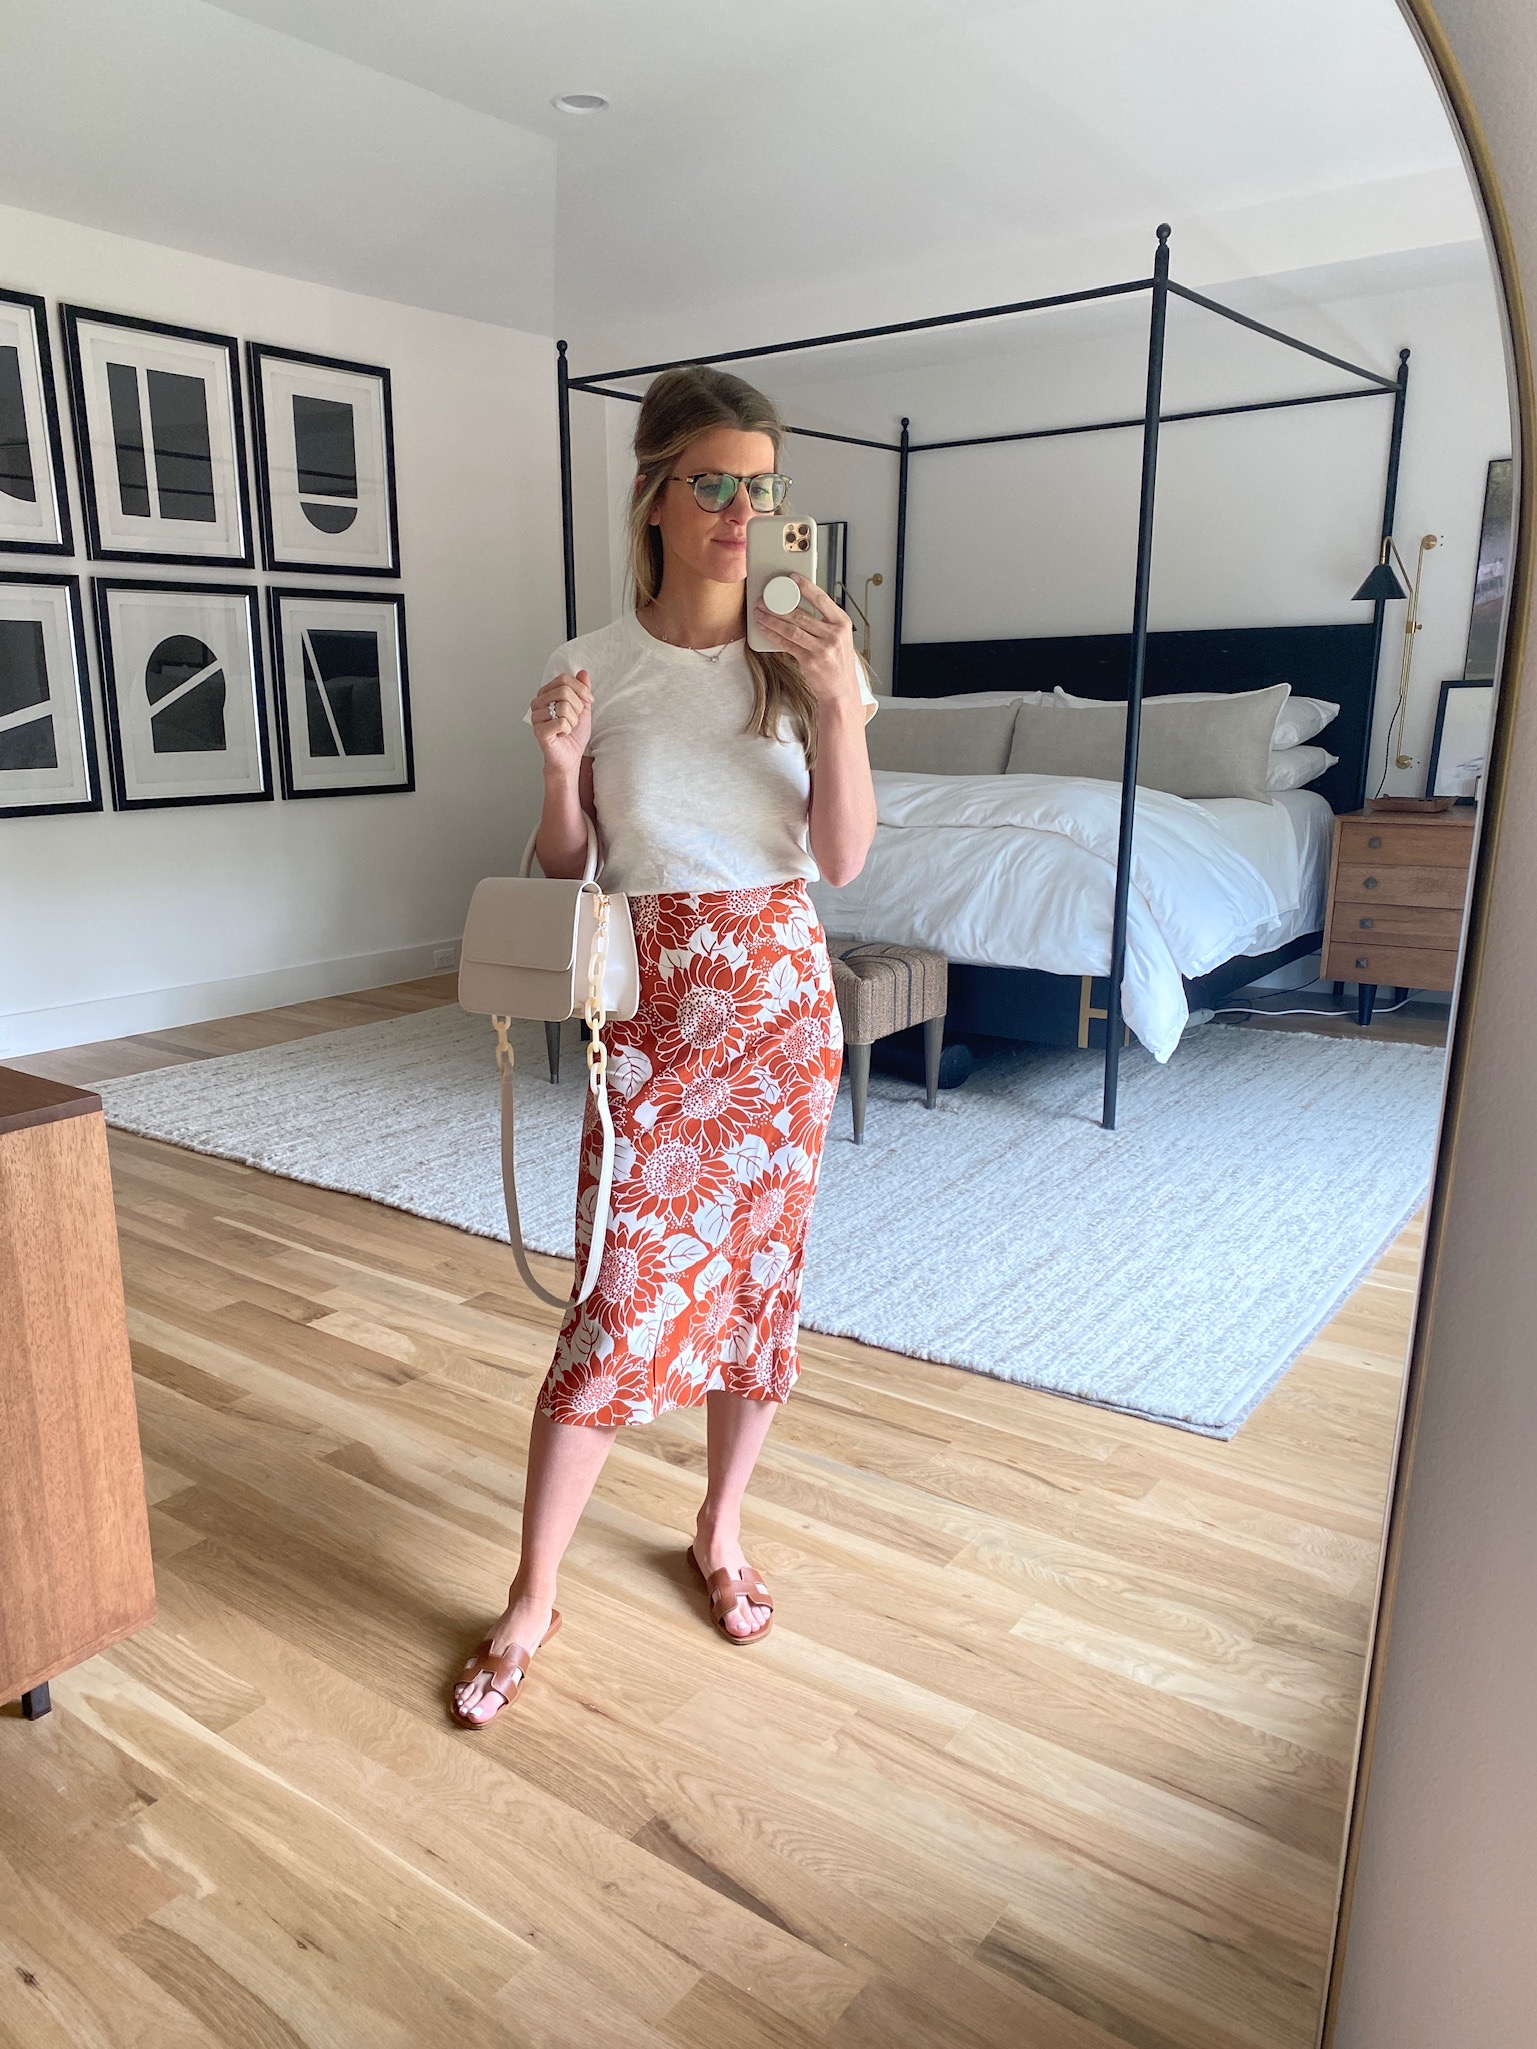 Brighton Butler wearing slip skirt floral from madewell and white tee and brown sandal from DSW